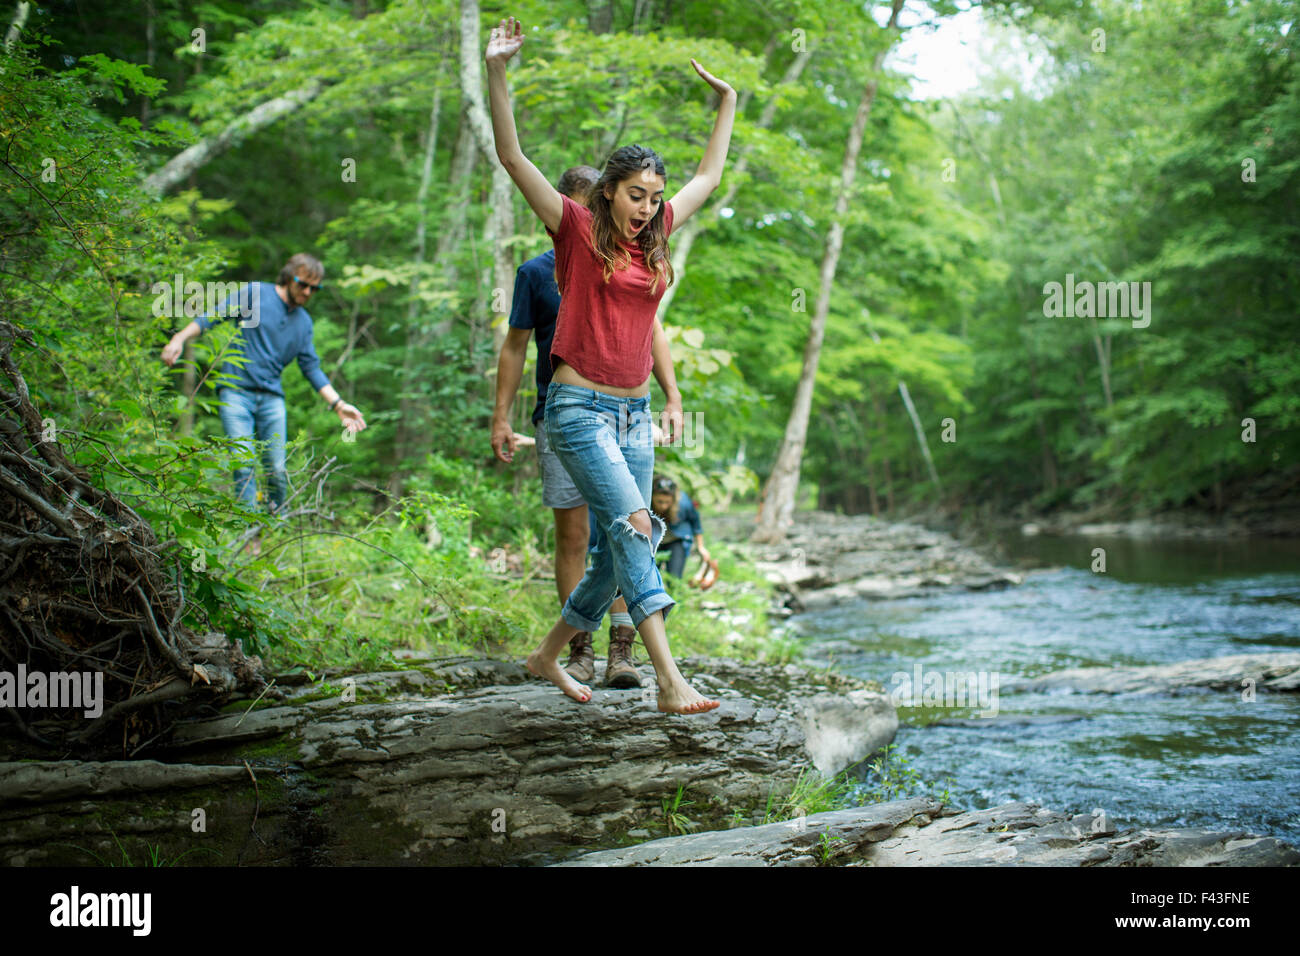 Two men and two women on the riverbank, one leaping across stepping stones. Stock Photo